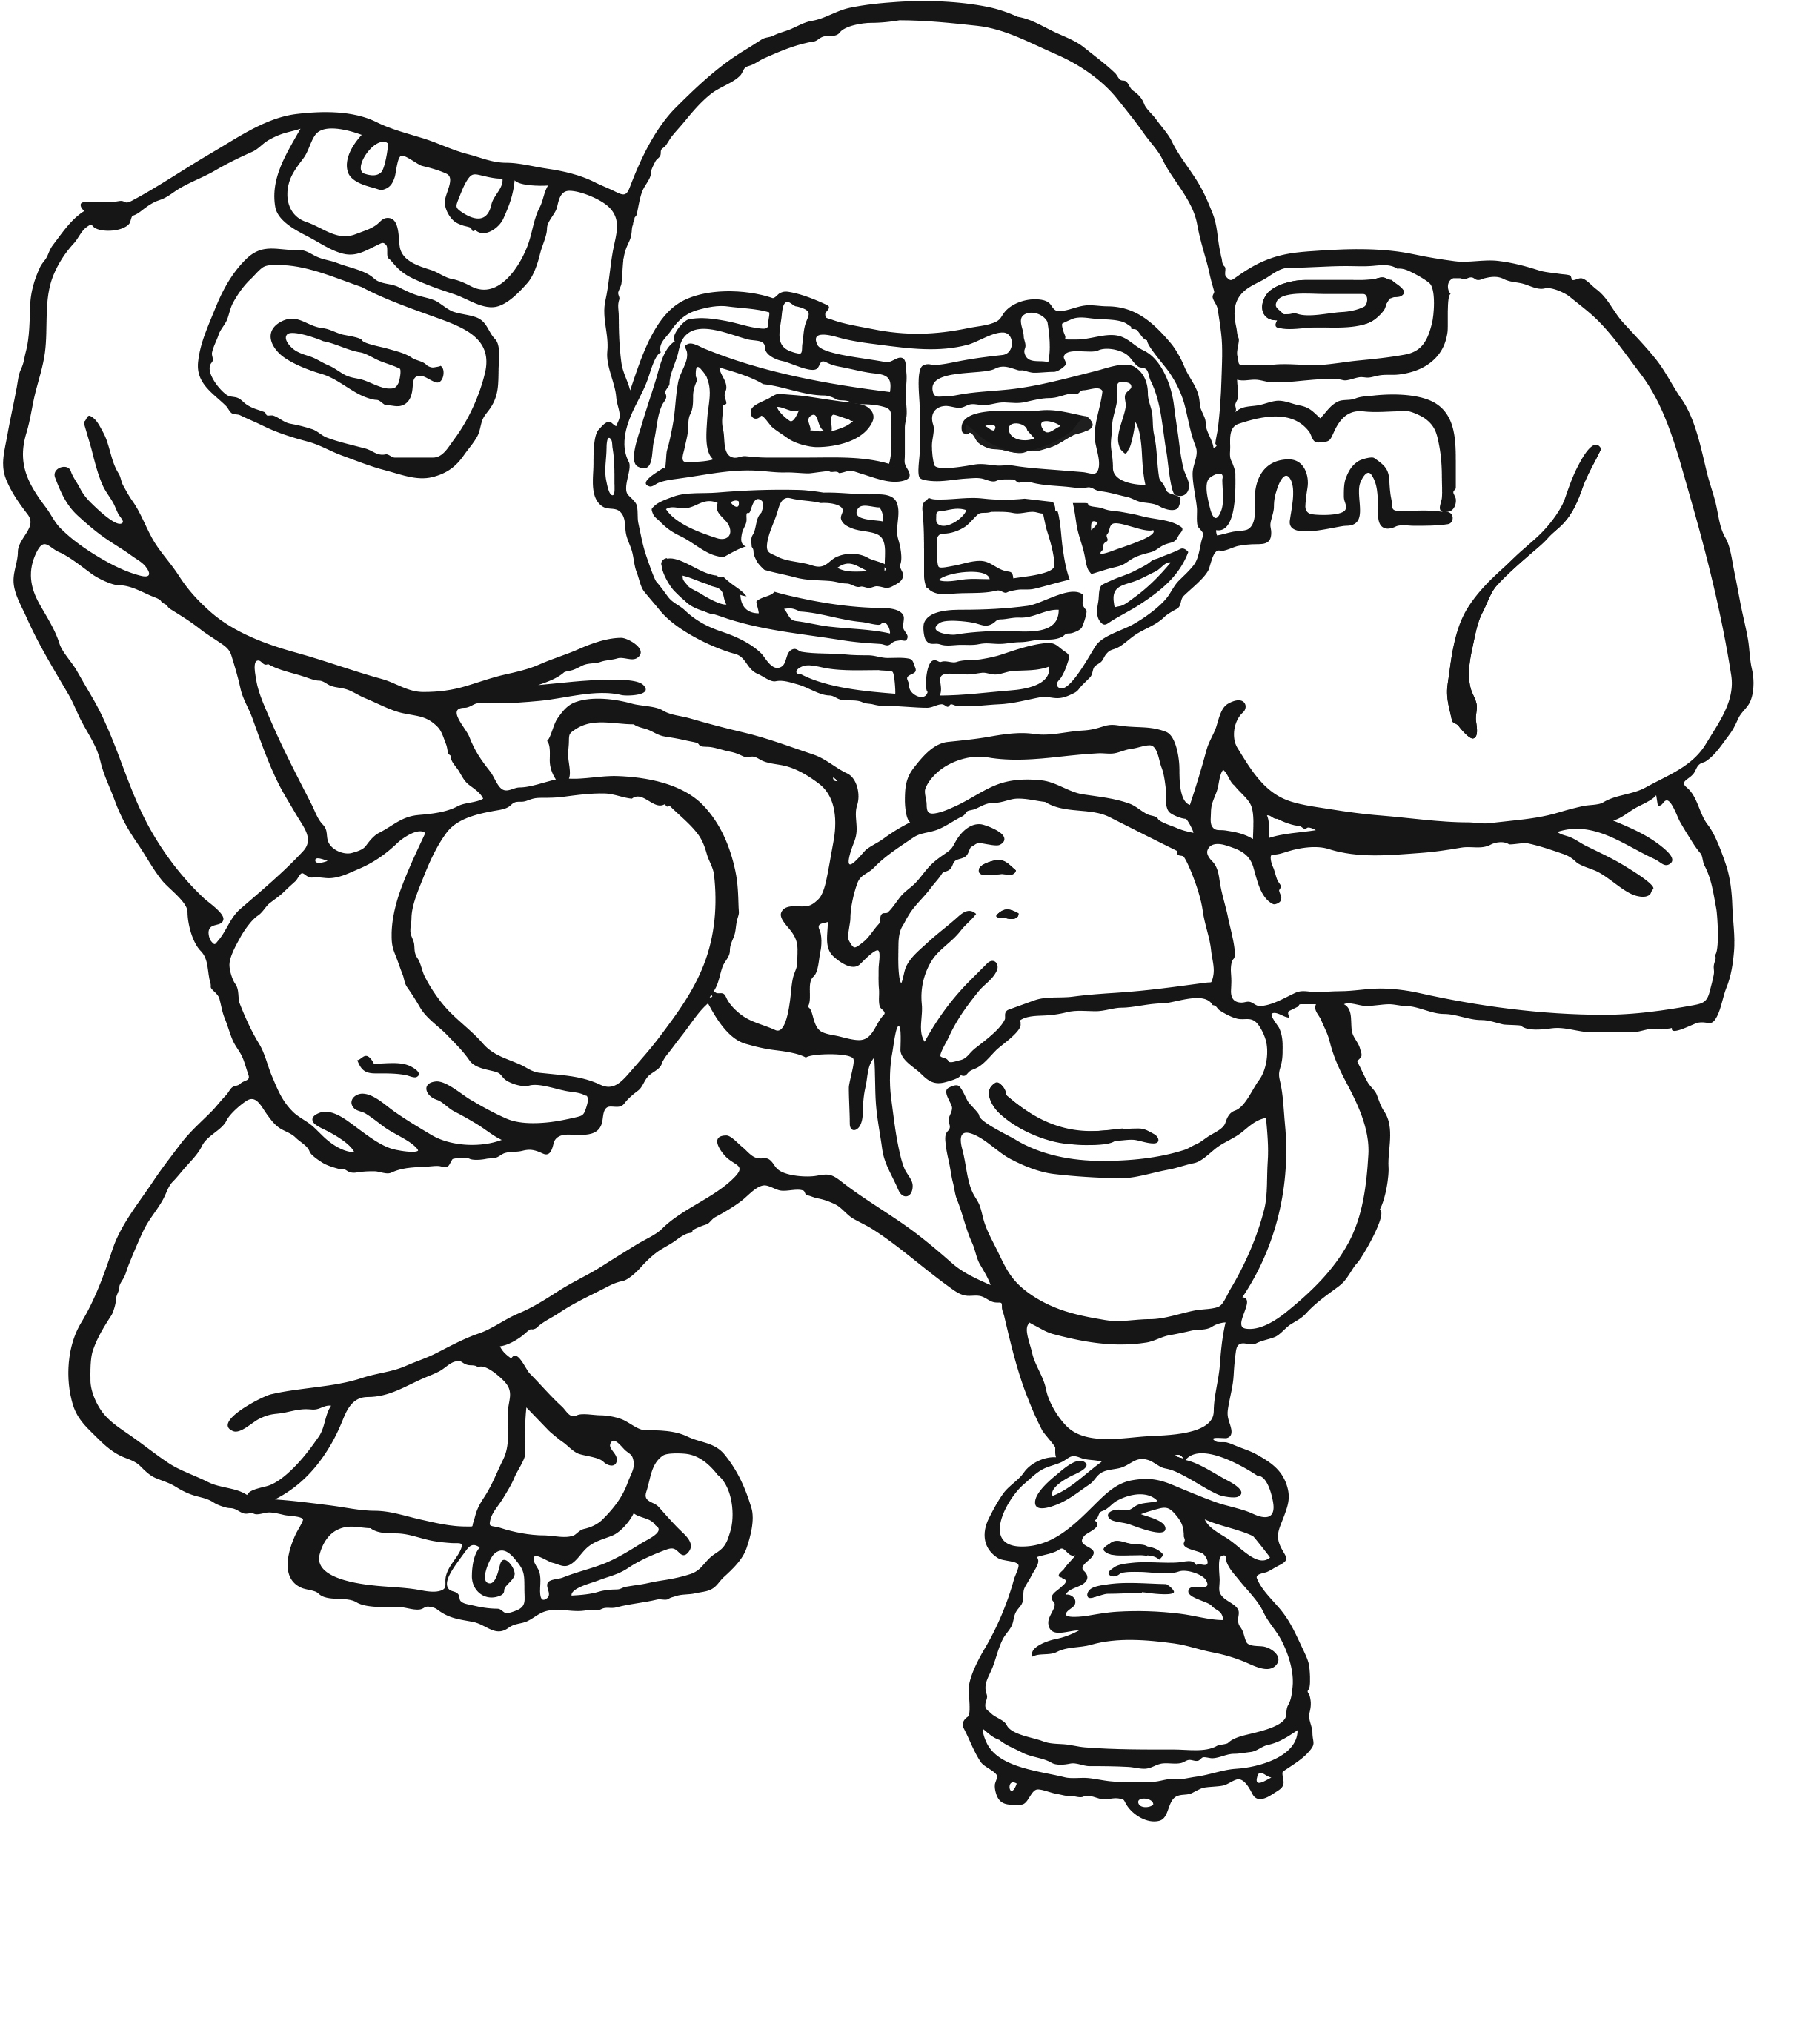 coloring page soccer free printable football coloring pages for kids soccer coloring page